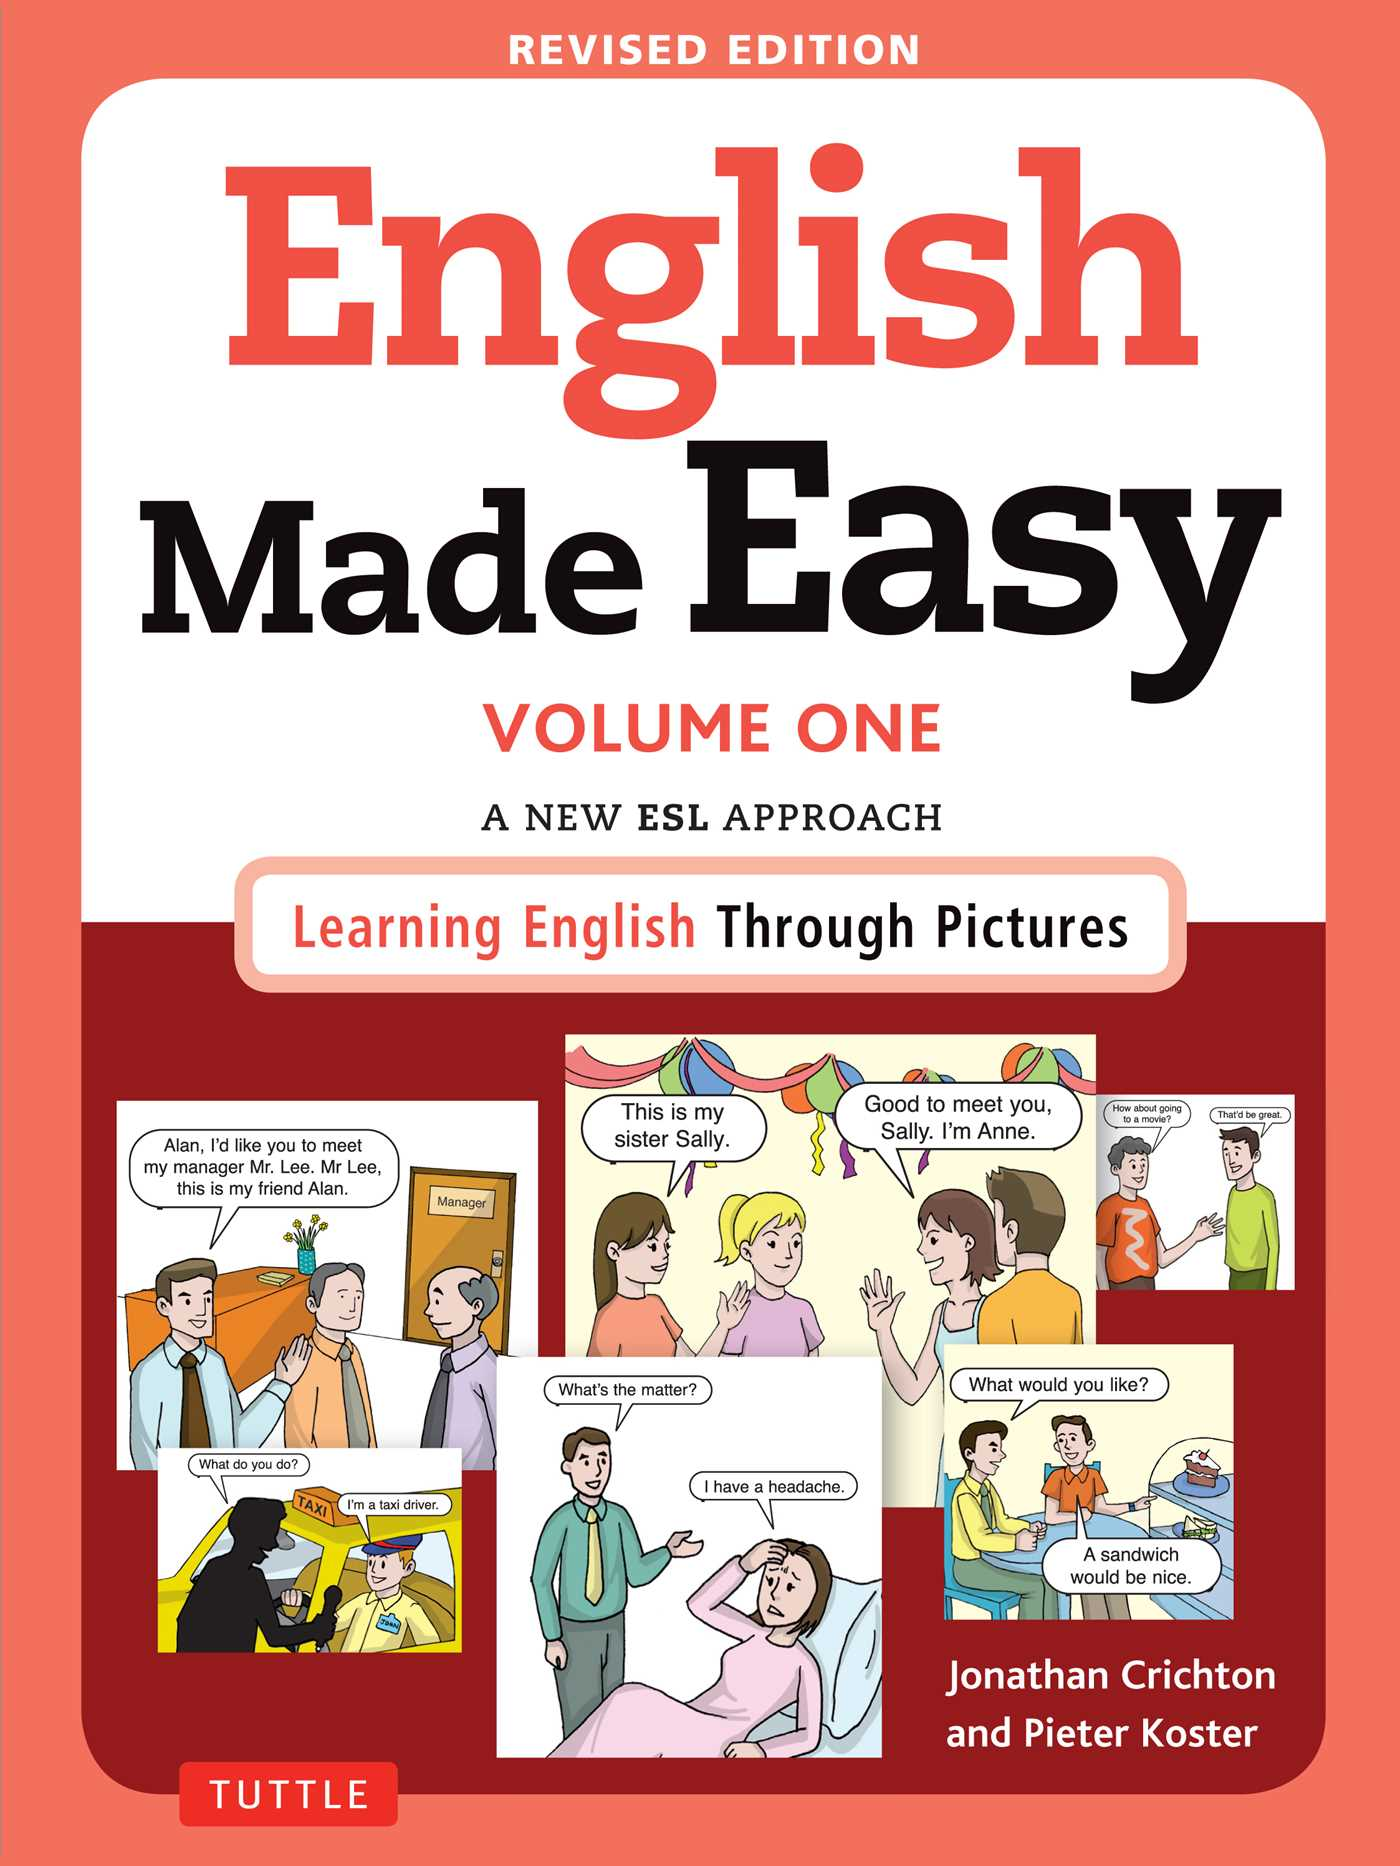 English-made-easy-volume-one-9780804845243_hr